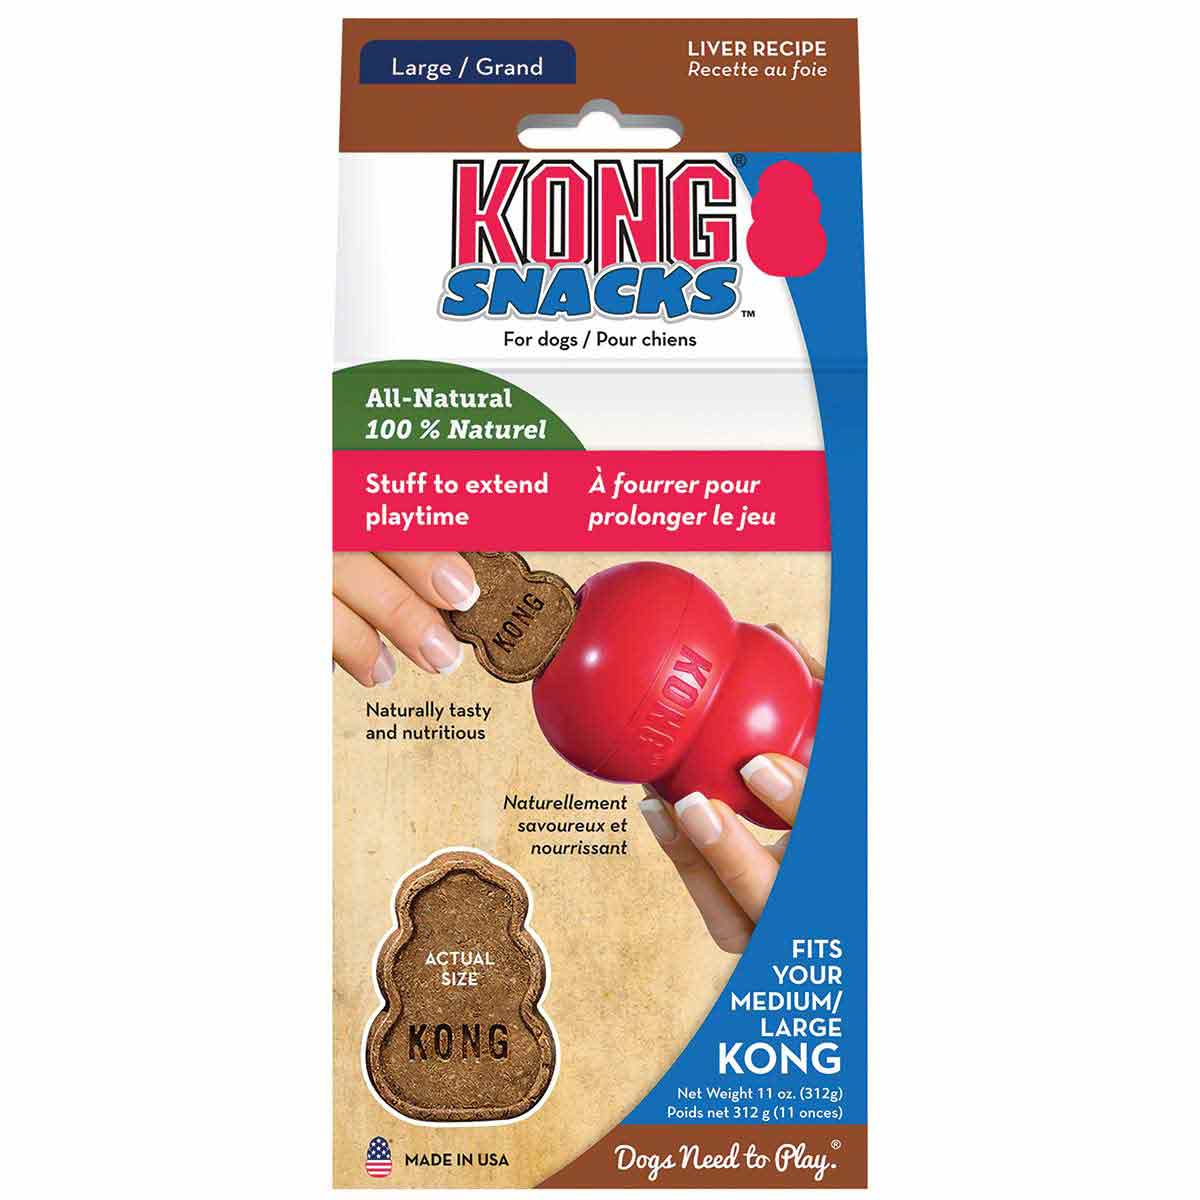 11 oz KONG Liver Snacks